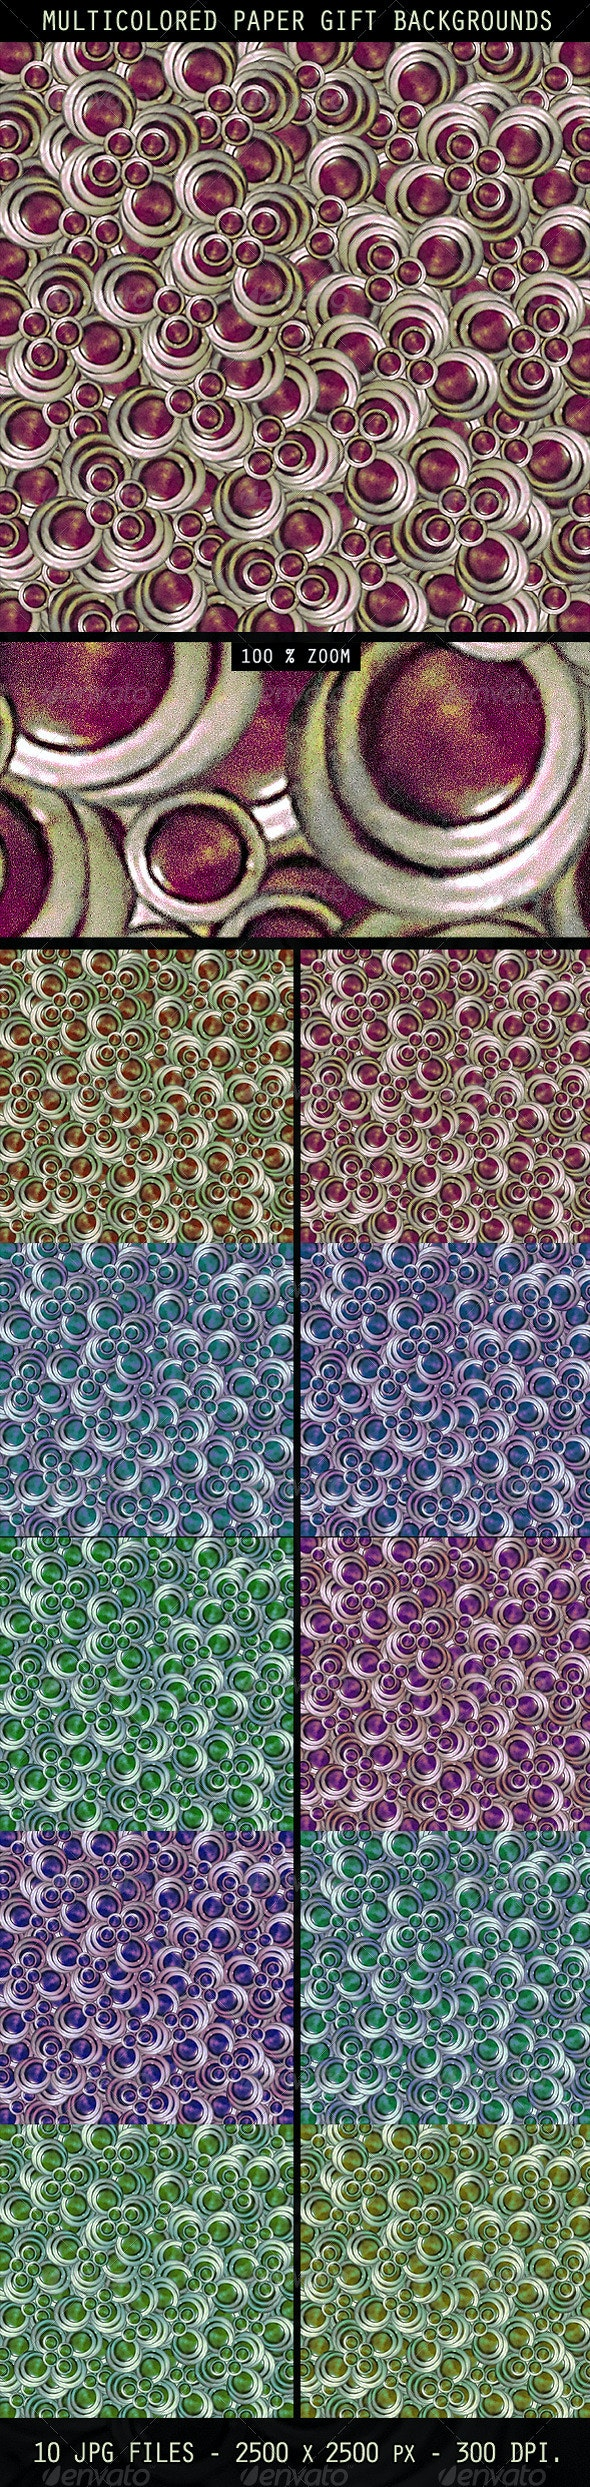 Multicolored Paper Gift Backgrounds - Abstract Backgrounds